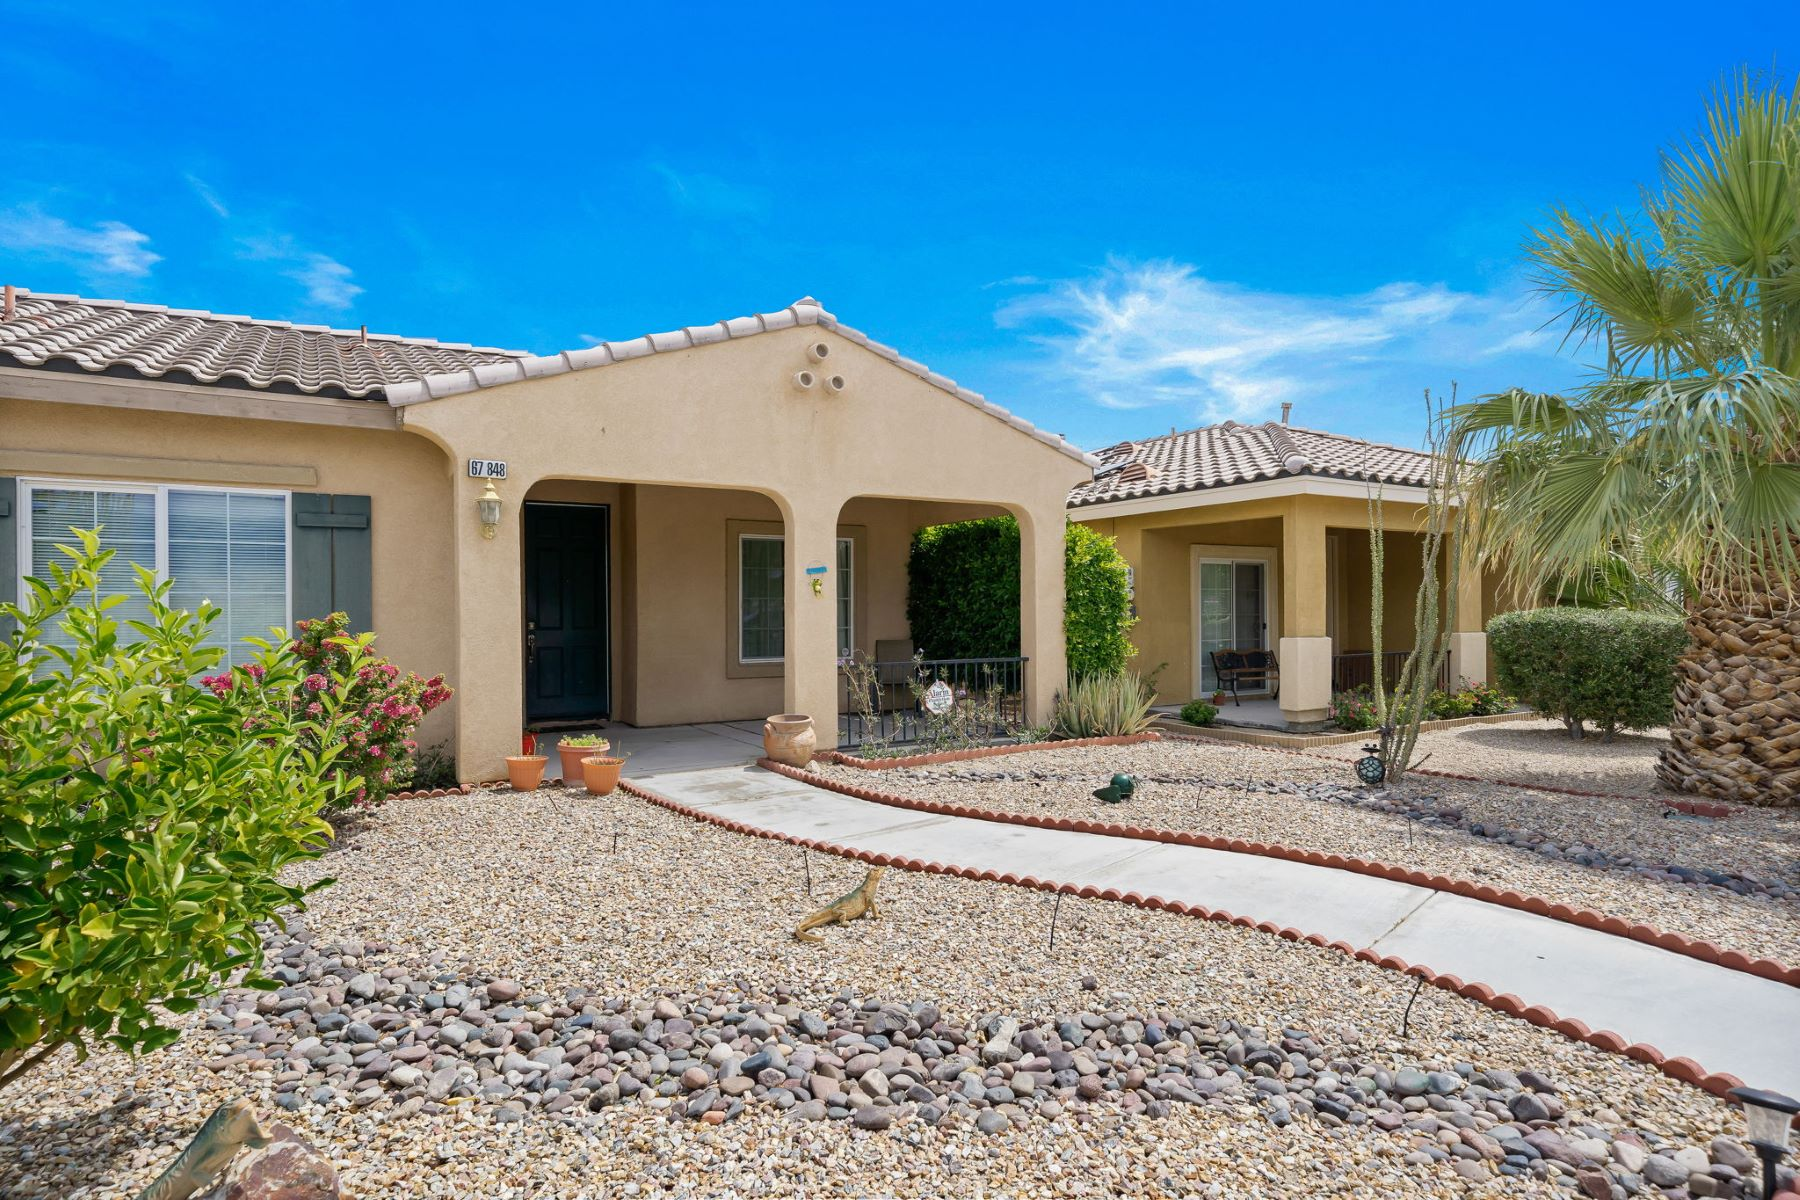 Single Family Homes for Sale at 67848 Rio Largo Road Cathedral City, California 92234 United States